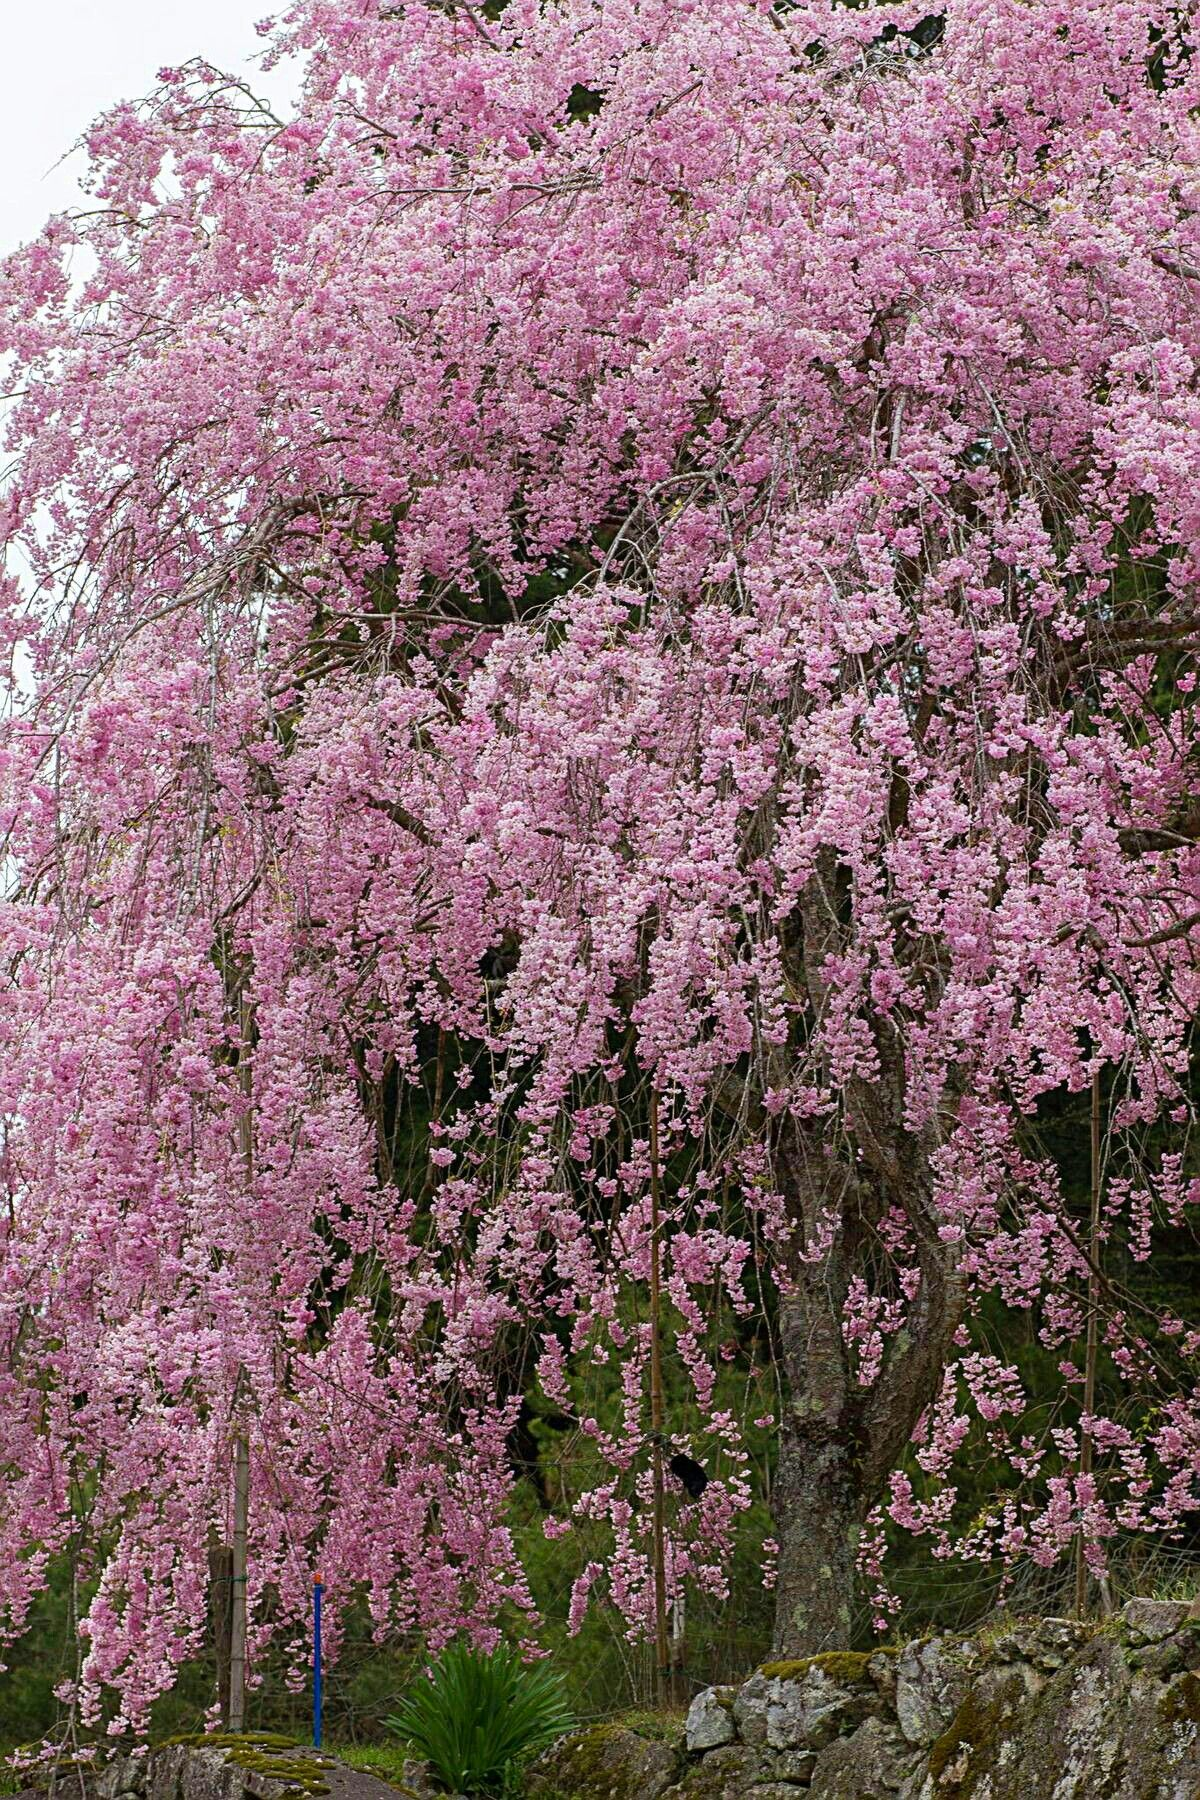 Pin By Shamsinar On Cherry Blossoms Weeping Cherry Tree Cherry Tree Blossom Trees